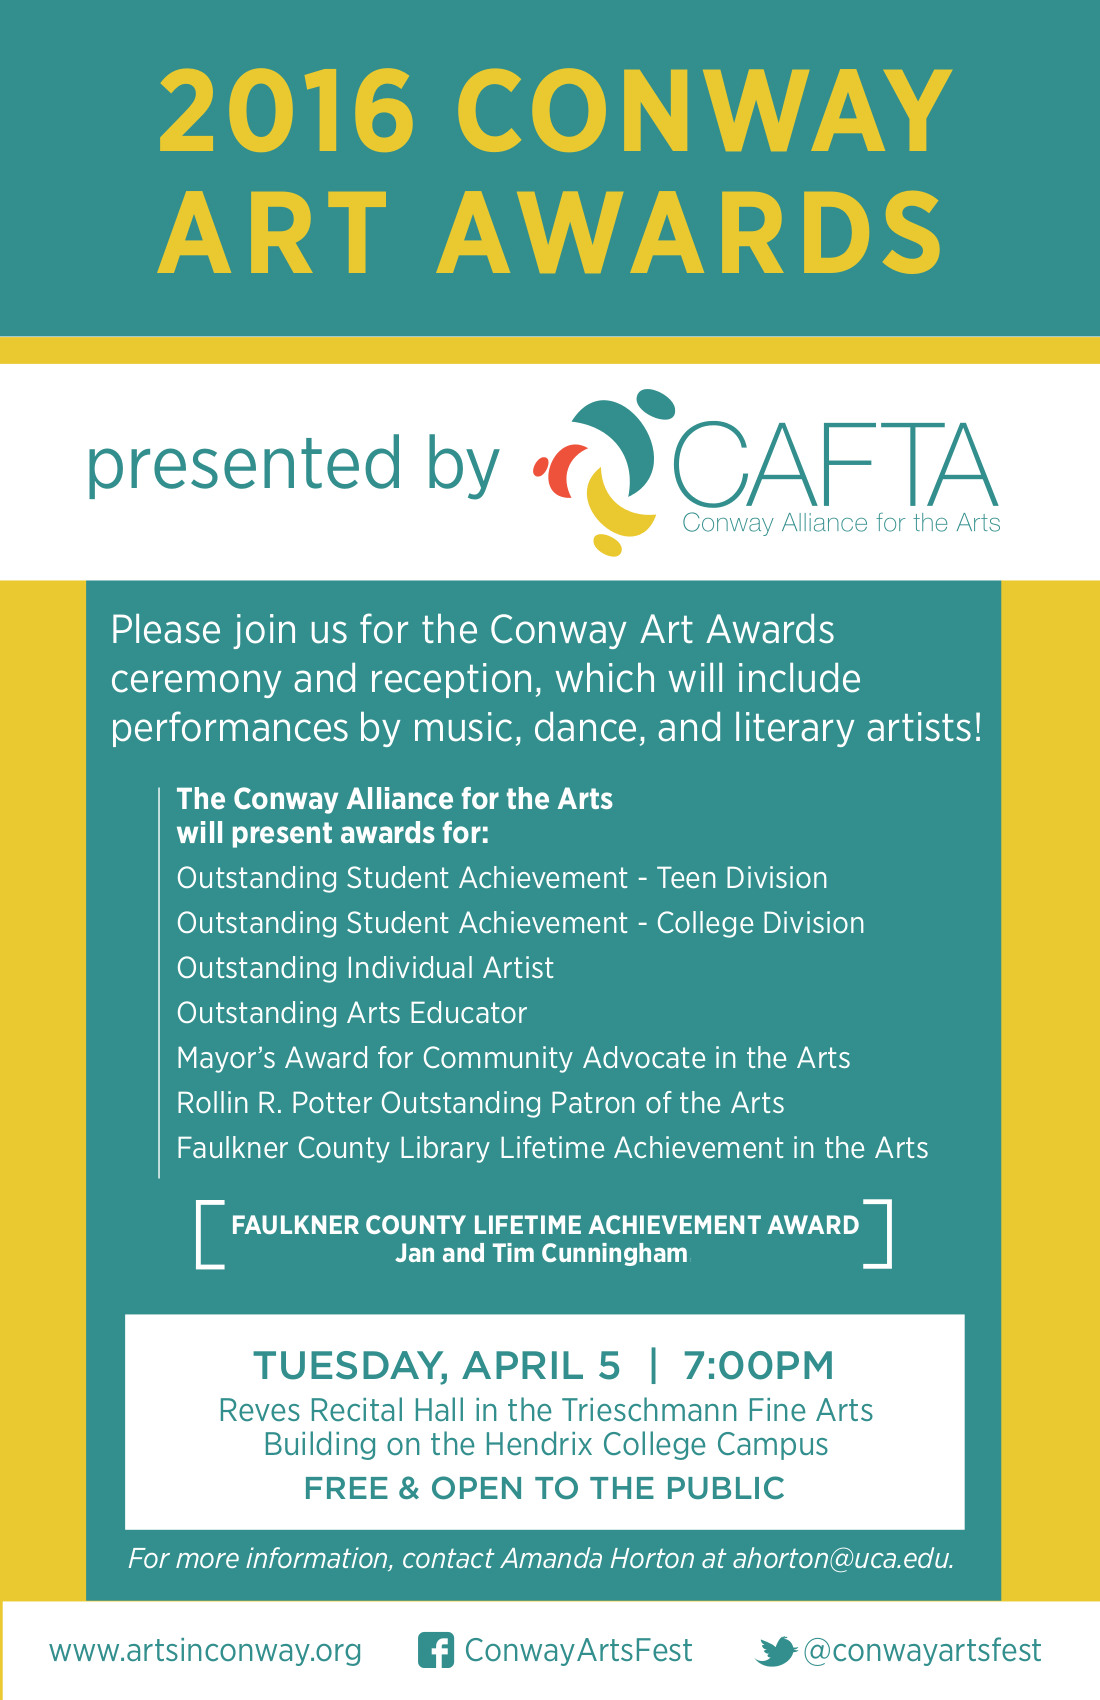 CAFTA-ArtAwards.jpg